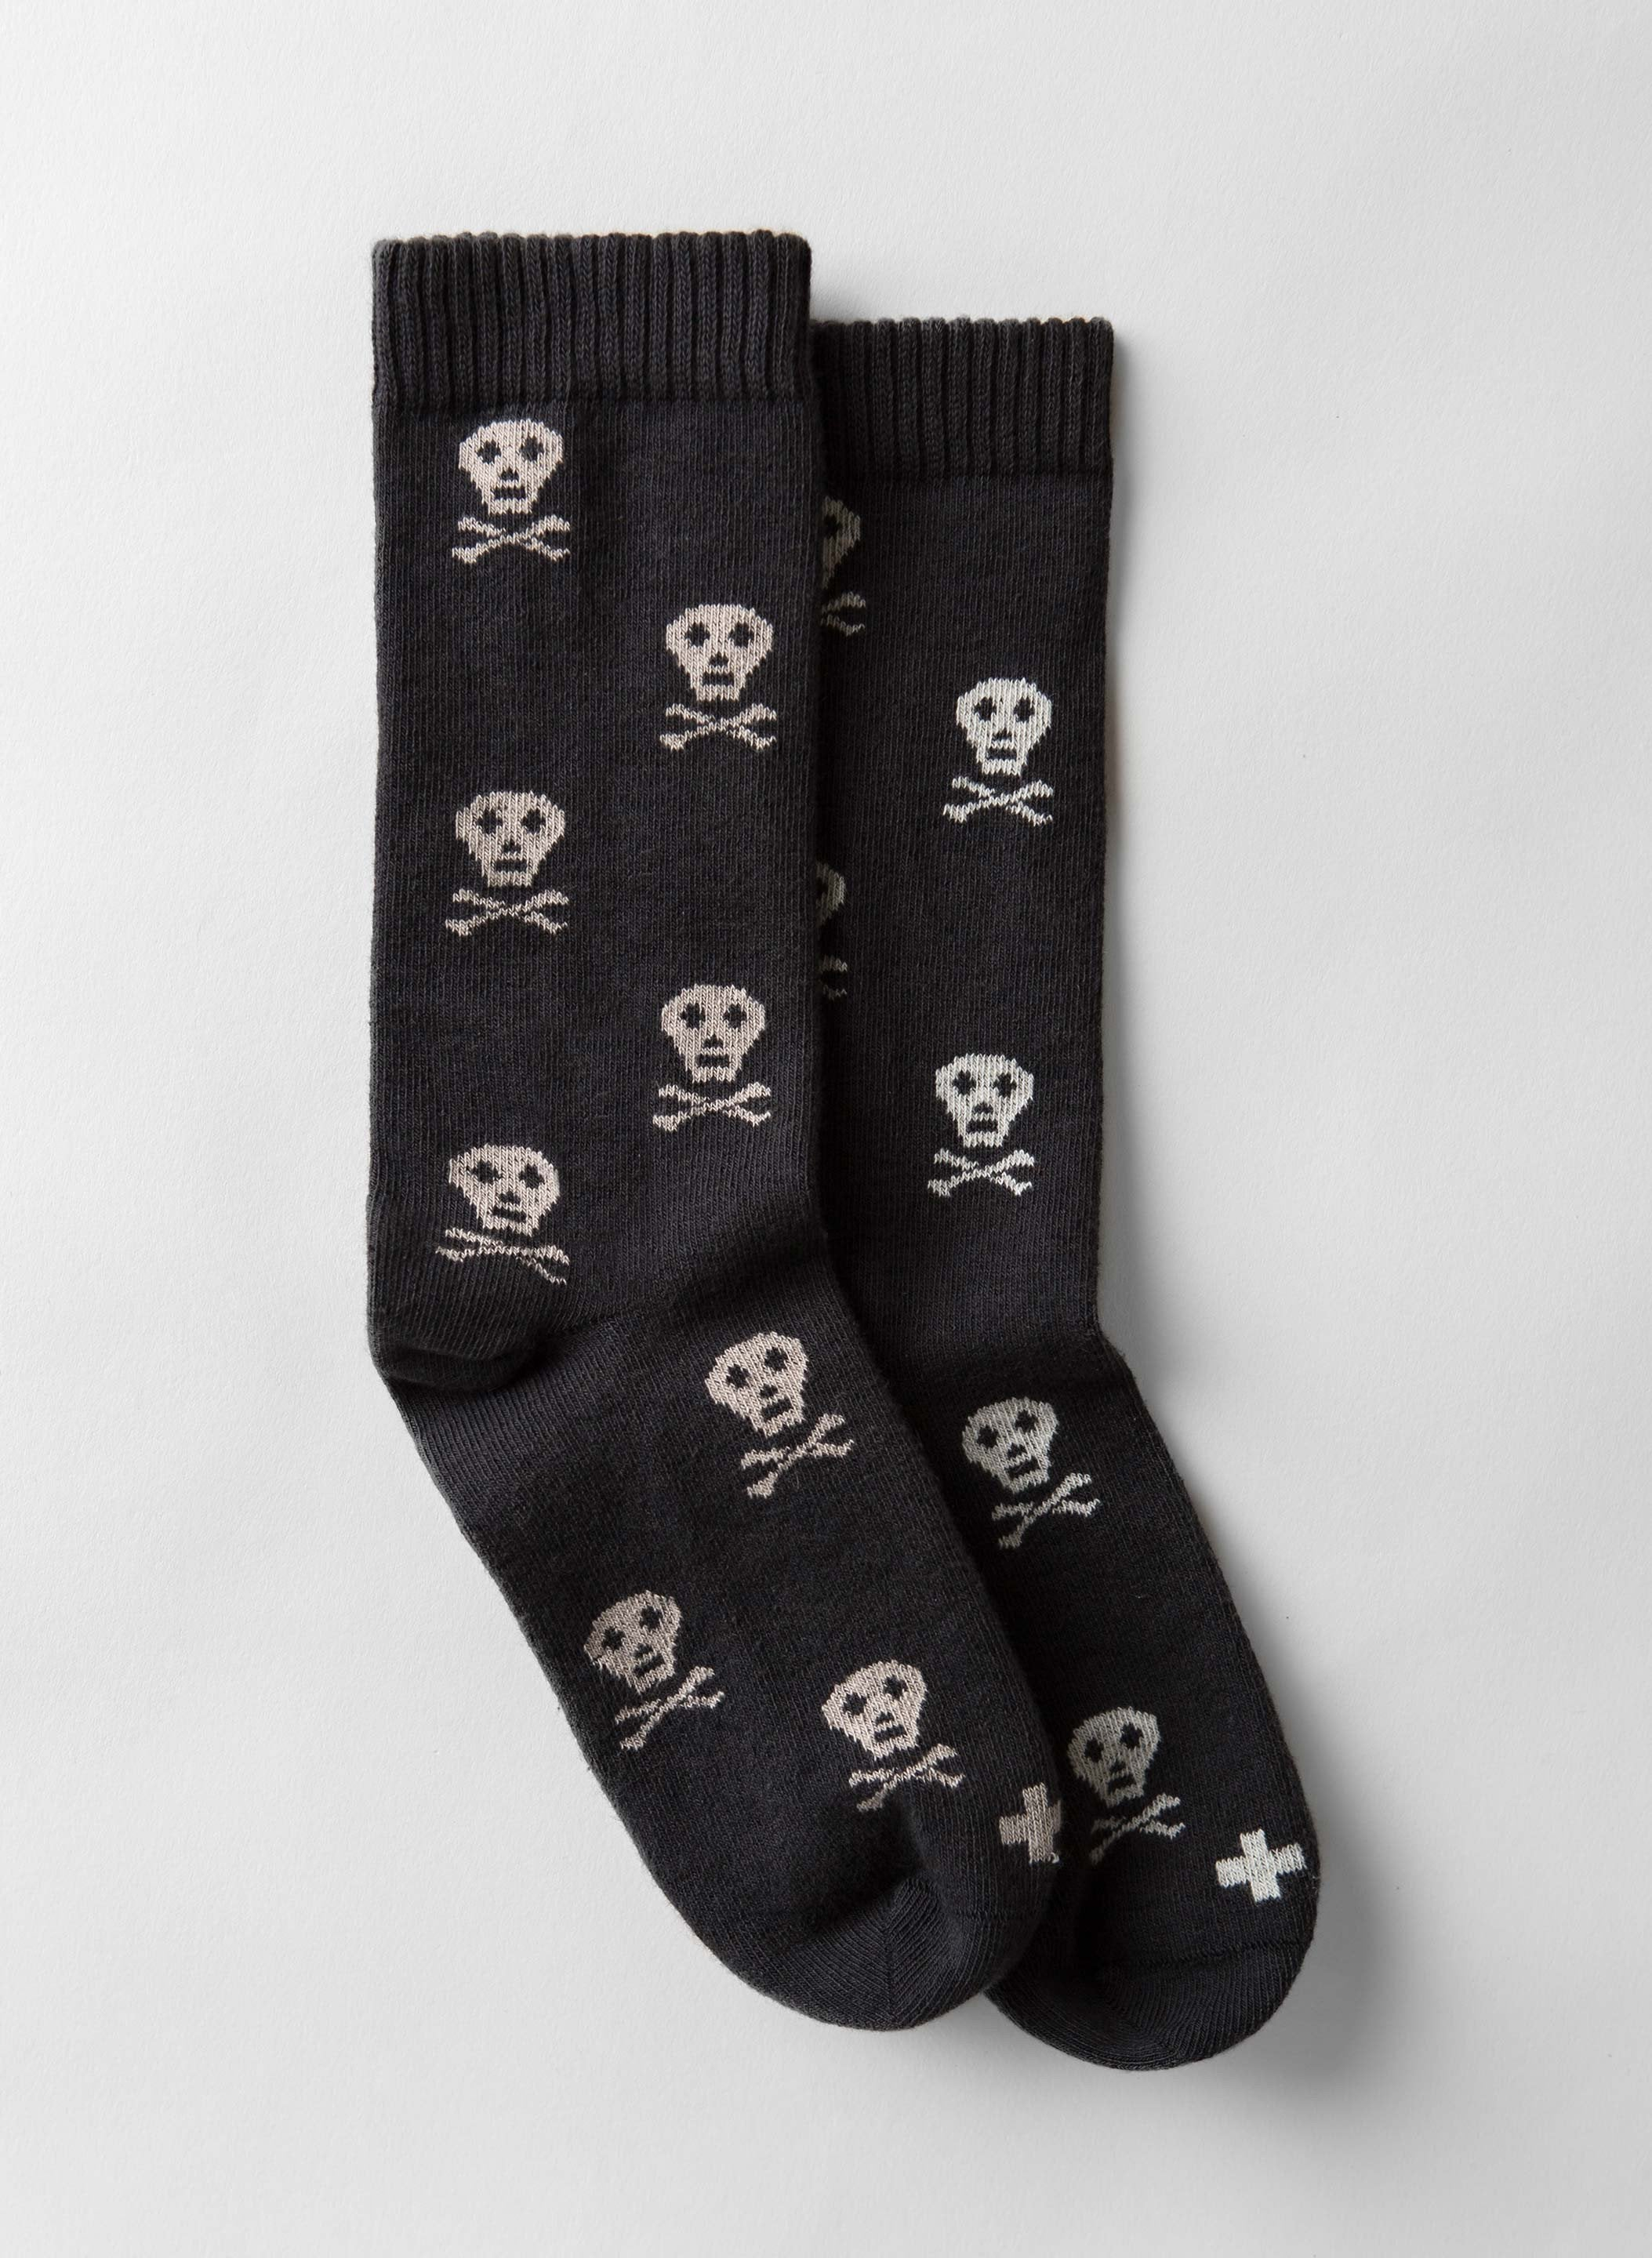 imogene + willie - skull sock in charcoal